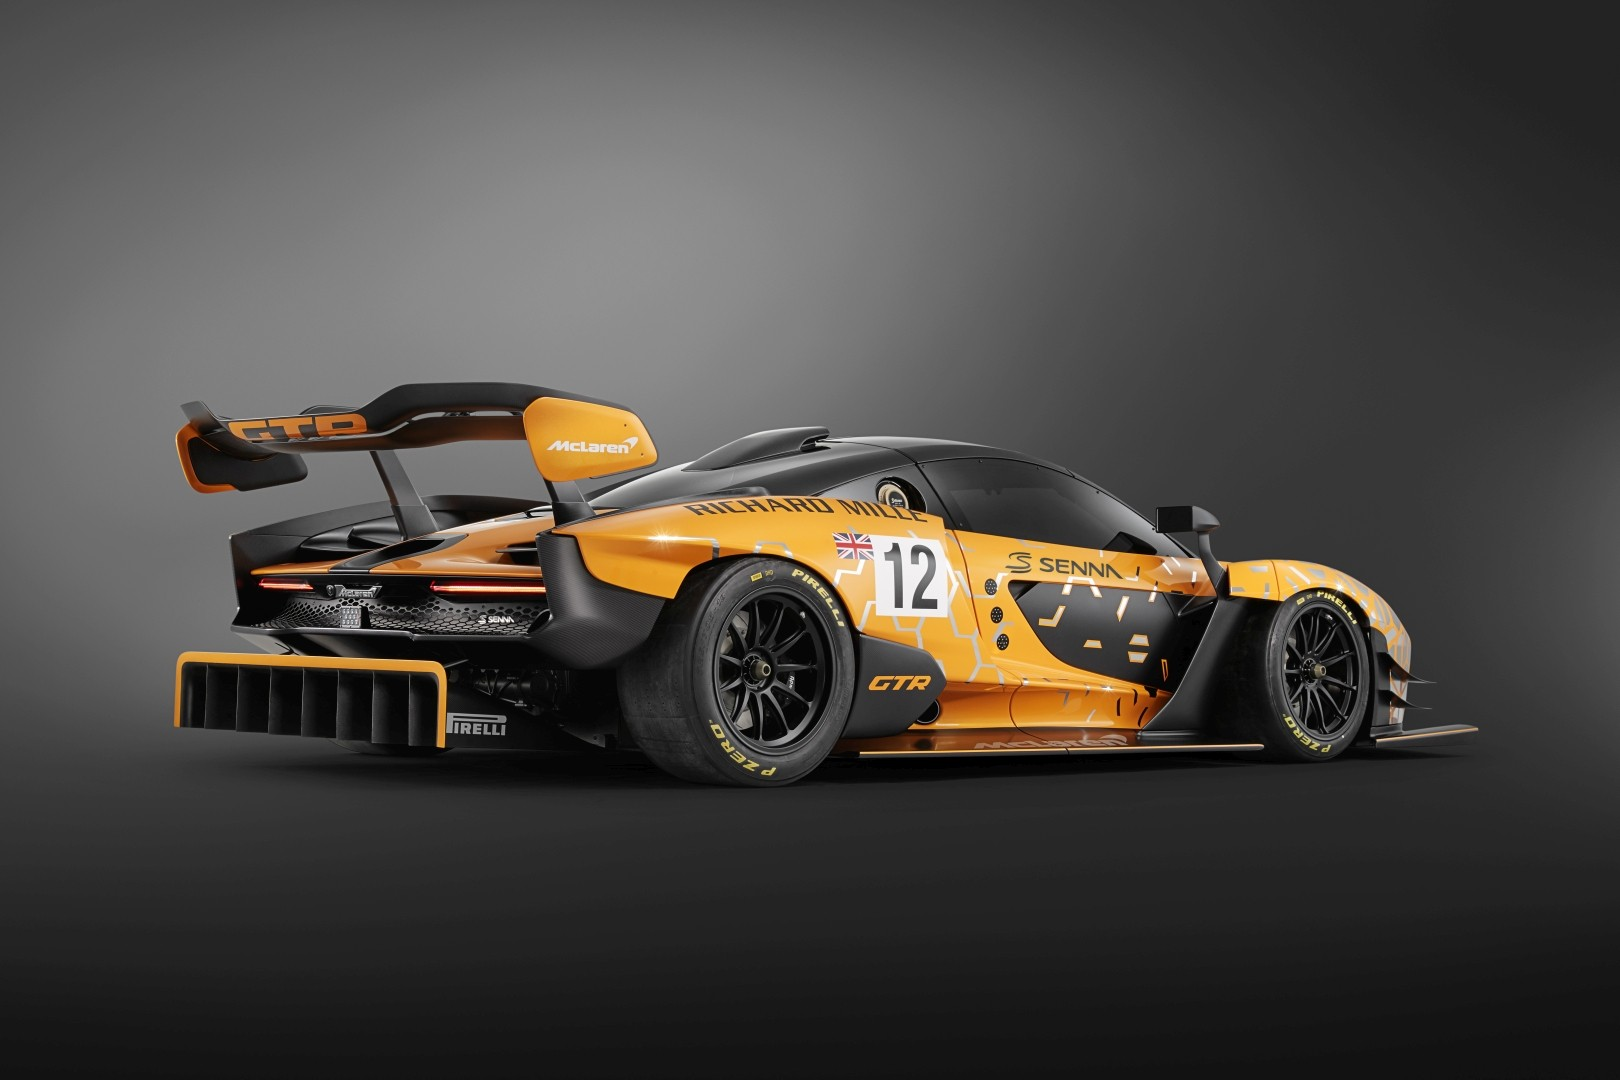 Mclaren Senna Gtr Customer Racecar Debuts As Quickest